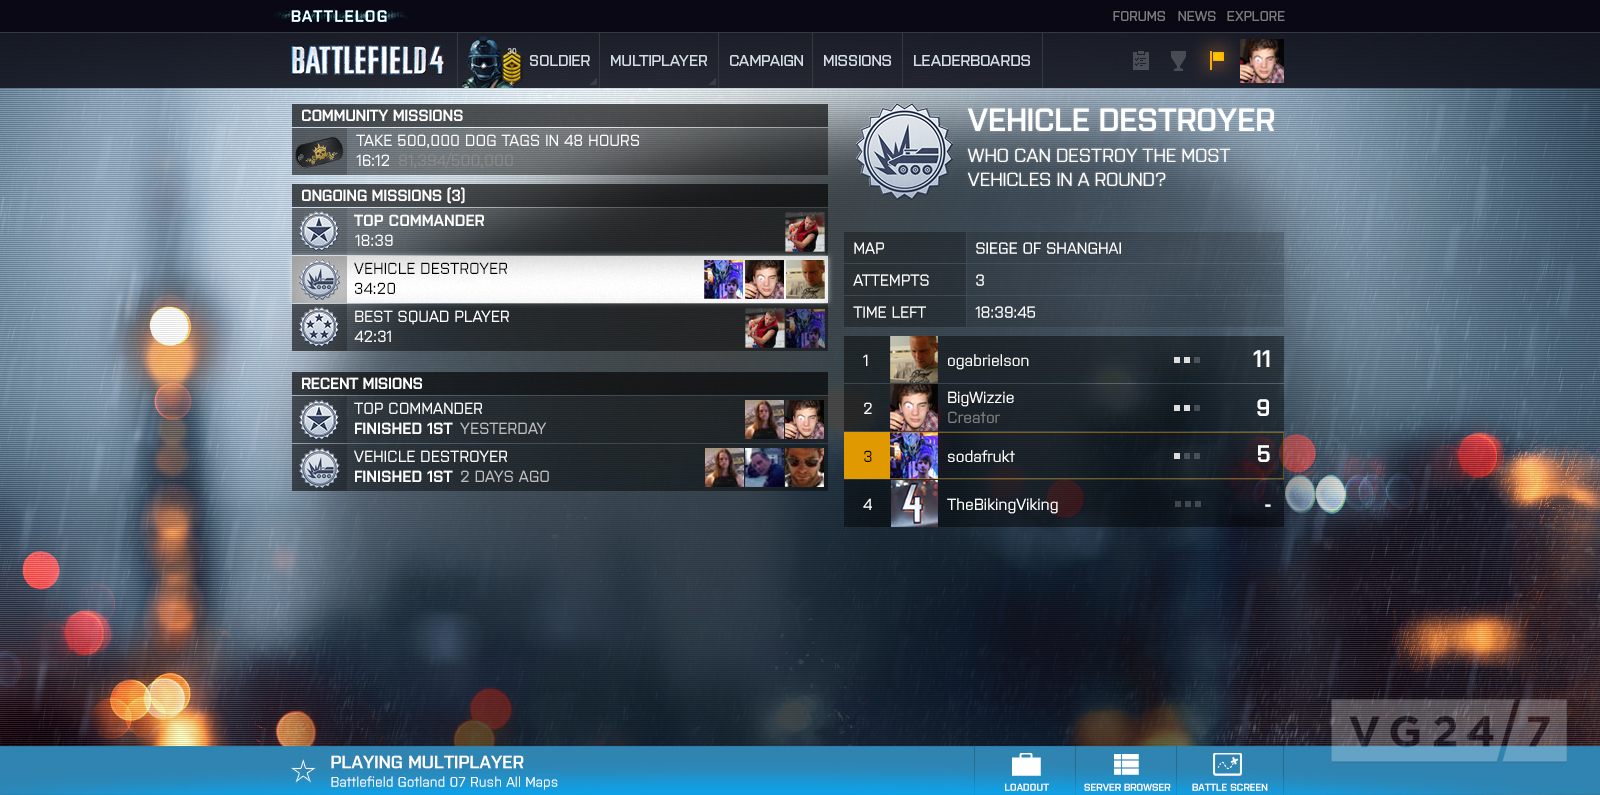 How To Remove Someone from Friends List on Battlelog - YouTube